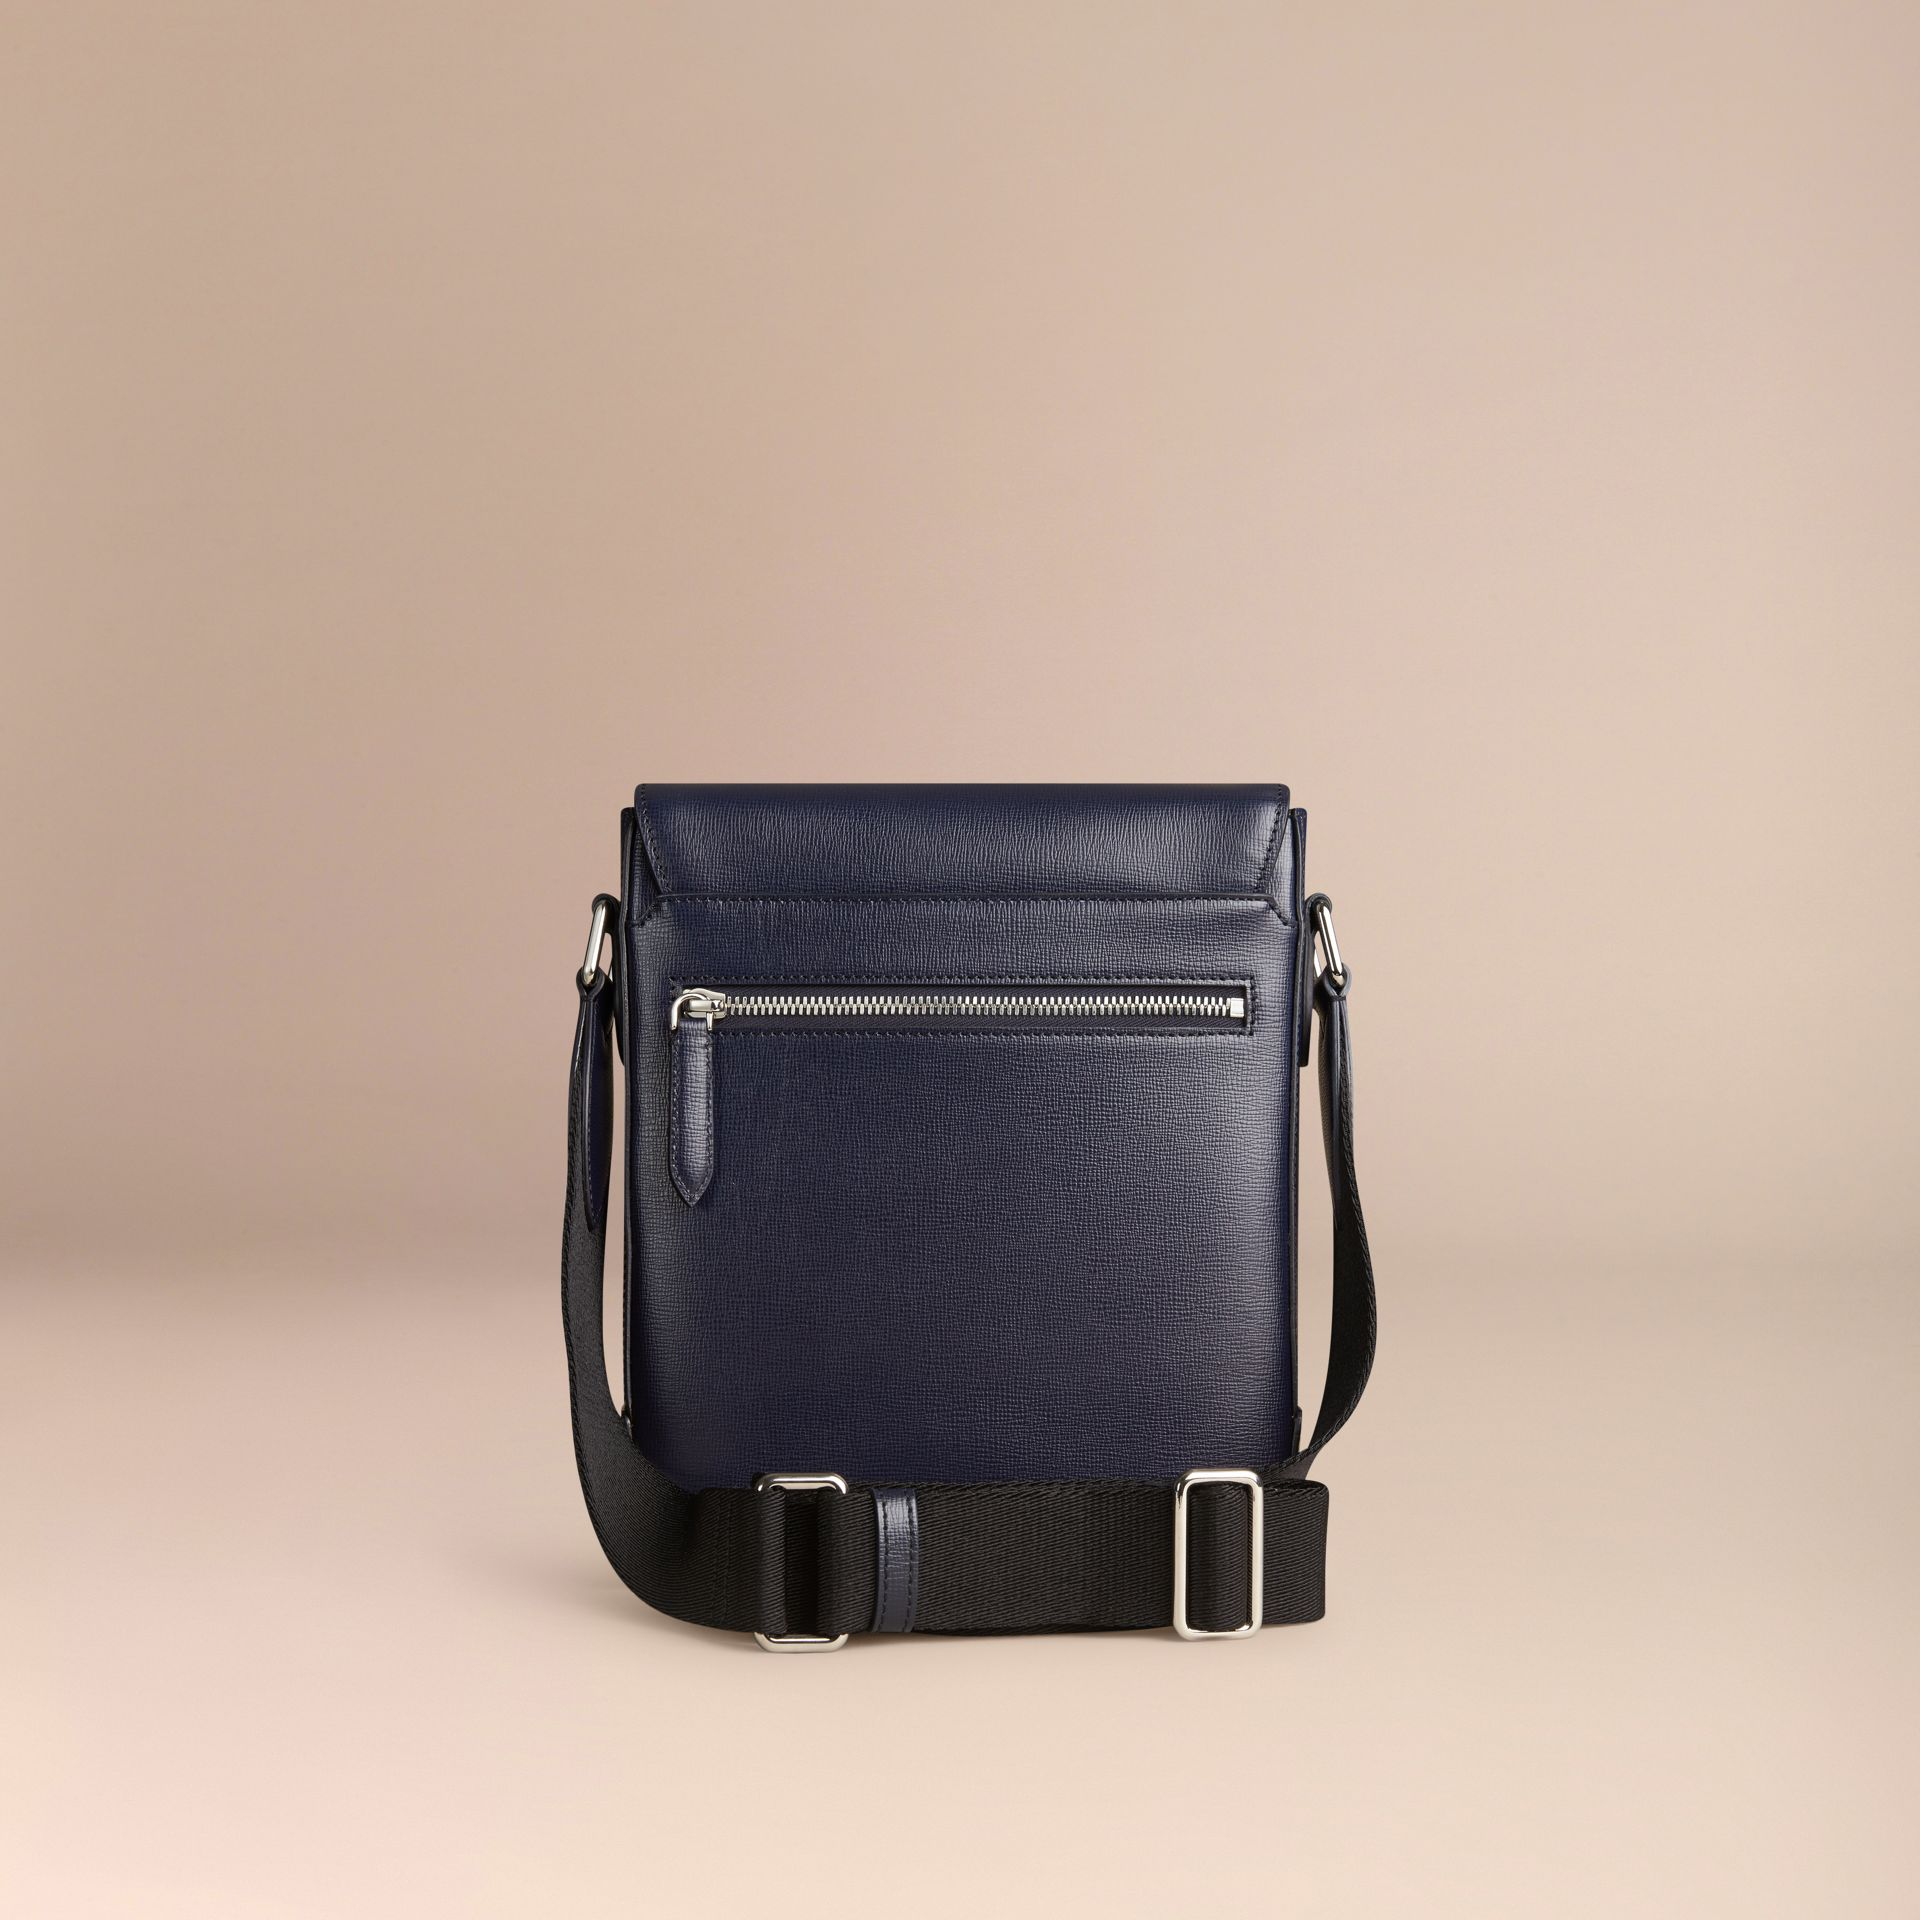 London Leather Crossbody Bag in Dark Navy - gallery image 4